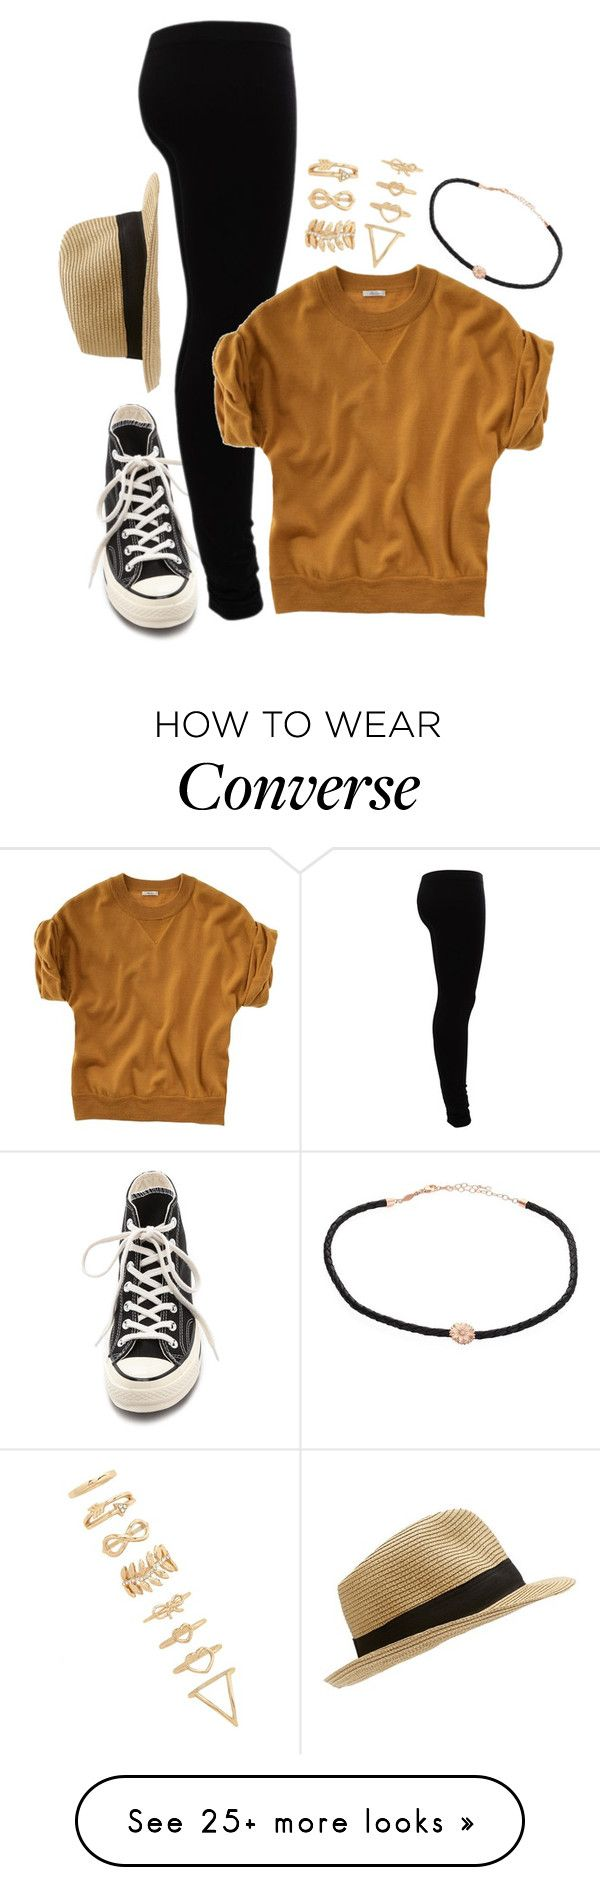 """""""You and me got a whole lotta history :)"""" by weirdestgirlever on Polyvore featuring Converse, Forever 21, Jacquie Aiche, Gestuz and Madewell"""